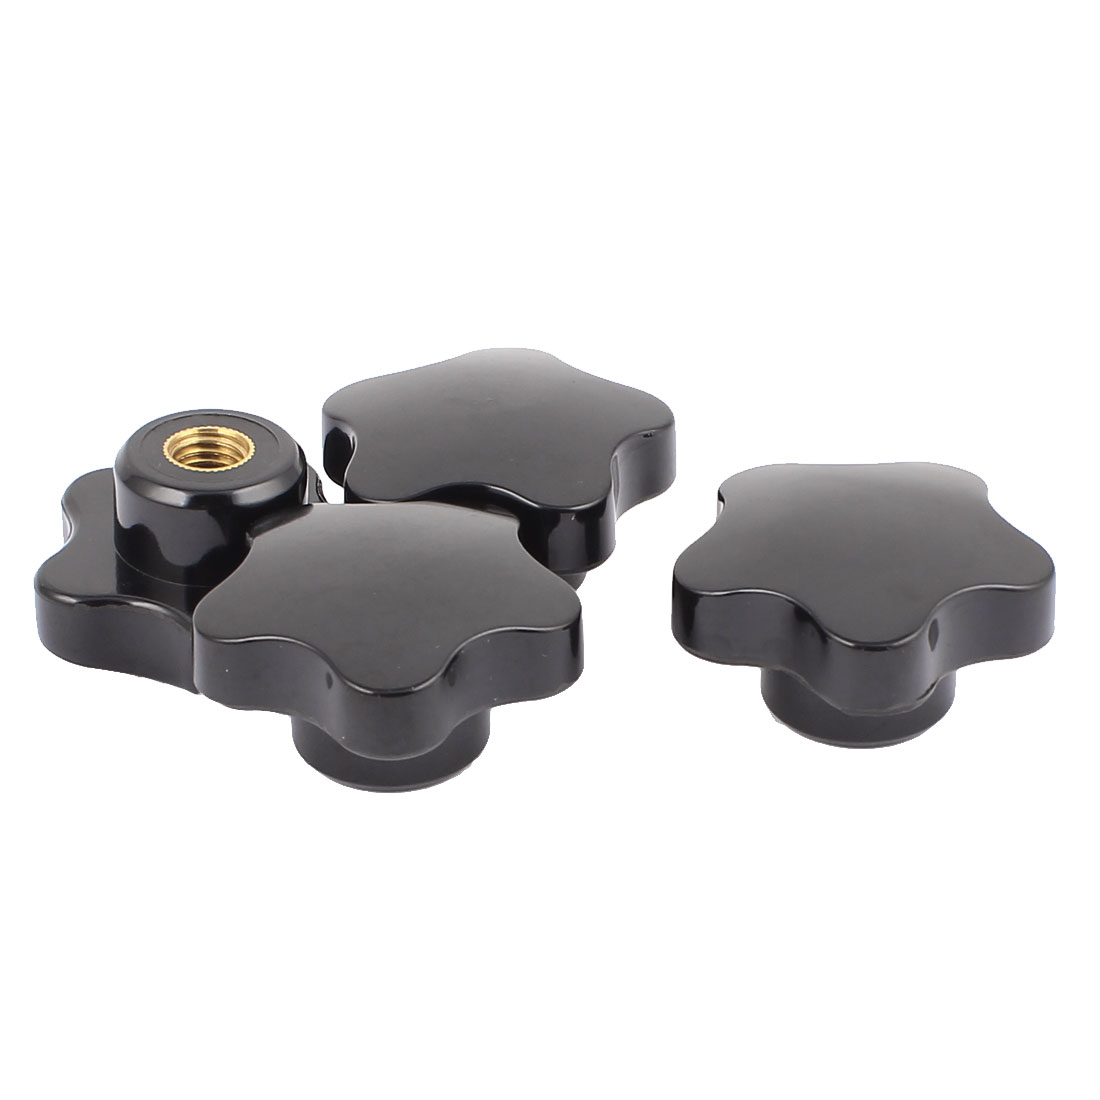 M10x47mm Diameter Thread Hole Black Star Head Clamping Knob Replacement 4 Pcs